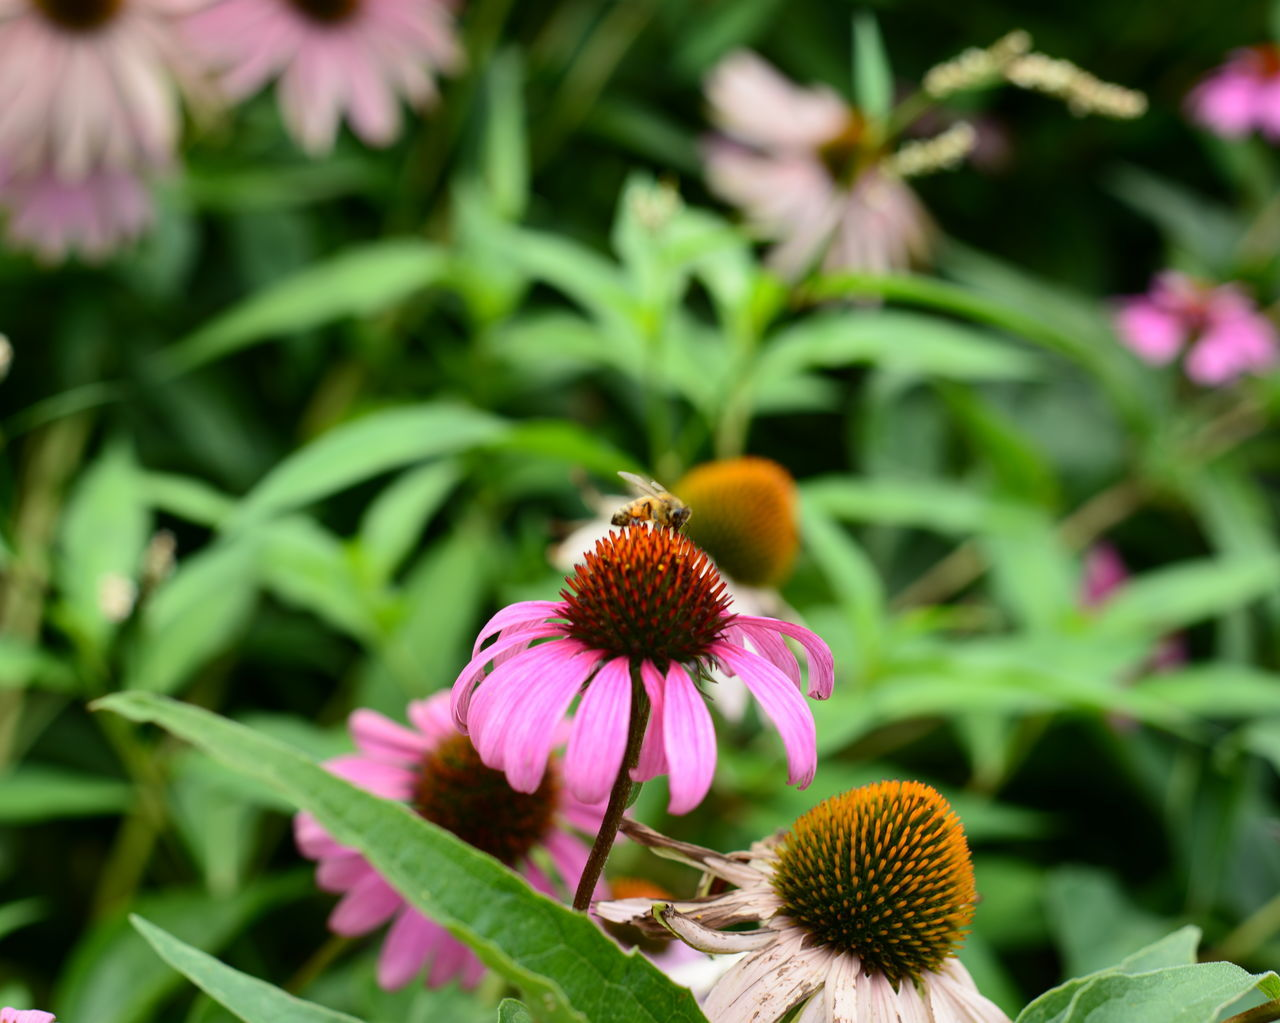 flower, growth, fragility, petal, nature, coneflower, freshness, flower head, beauty in nature, blooming, eastern purple coneflower, plant, pink color, day, pollen, outdoors, no people, close-up